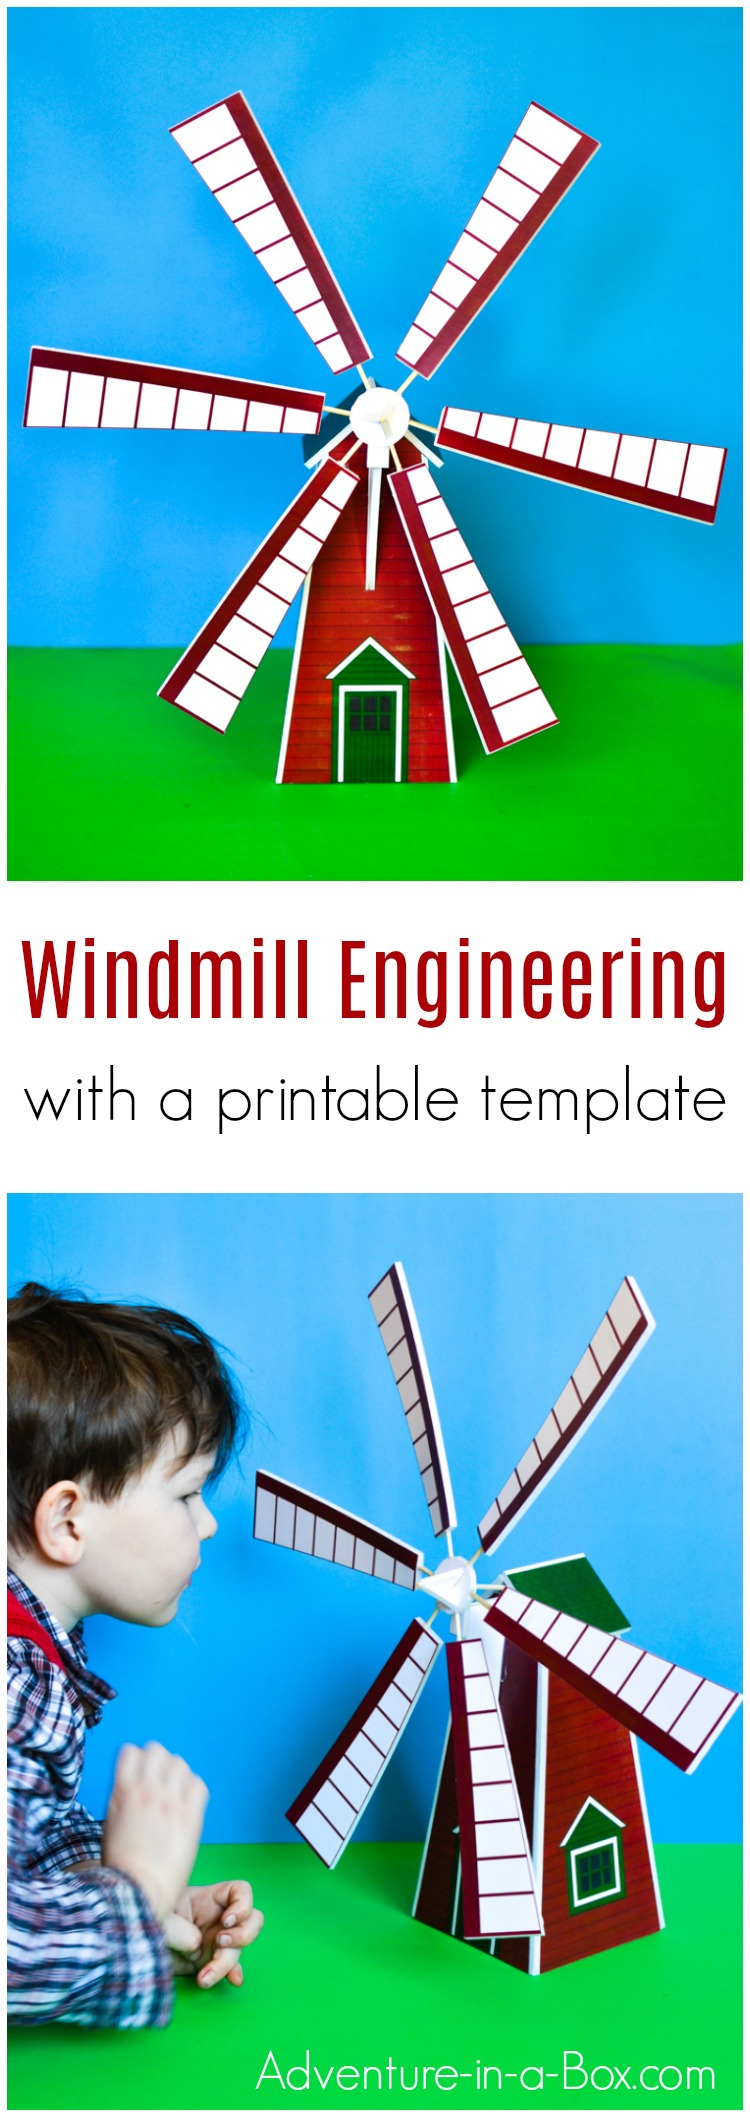 Make a windmill model and hold a scientific study with children! With a printable template, building your own toy windmill is a quick and easy STEM craft. #stem #stemforkids #stemcrafts #kidcrafts